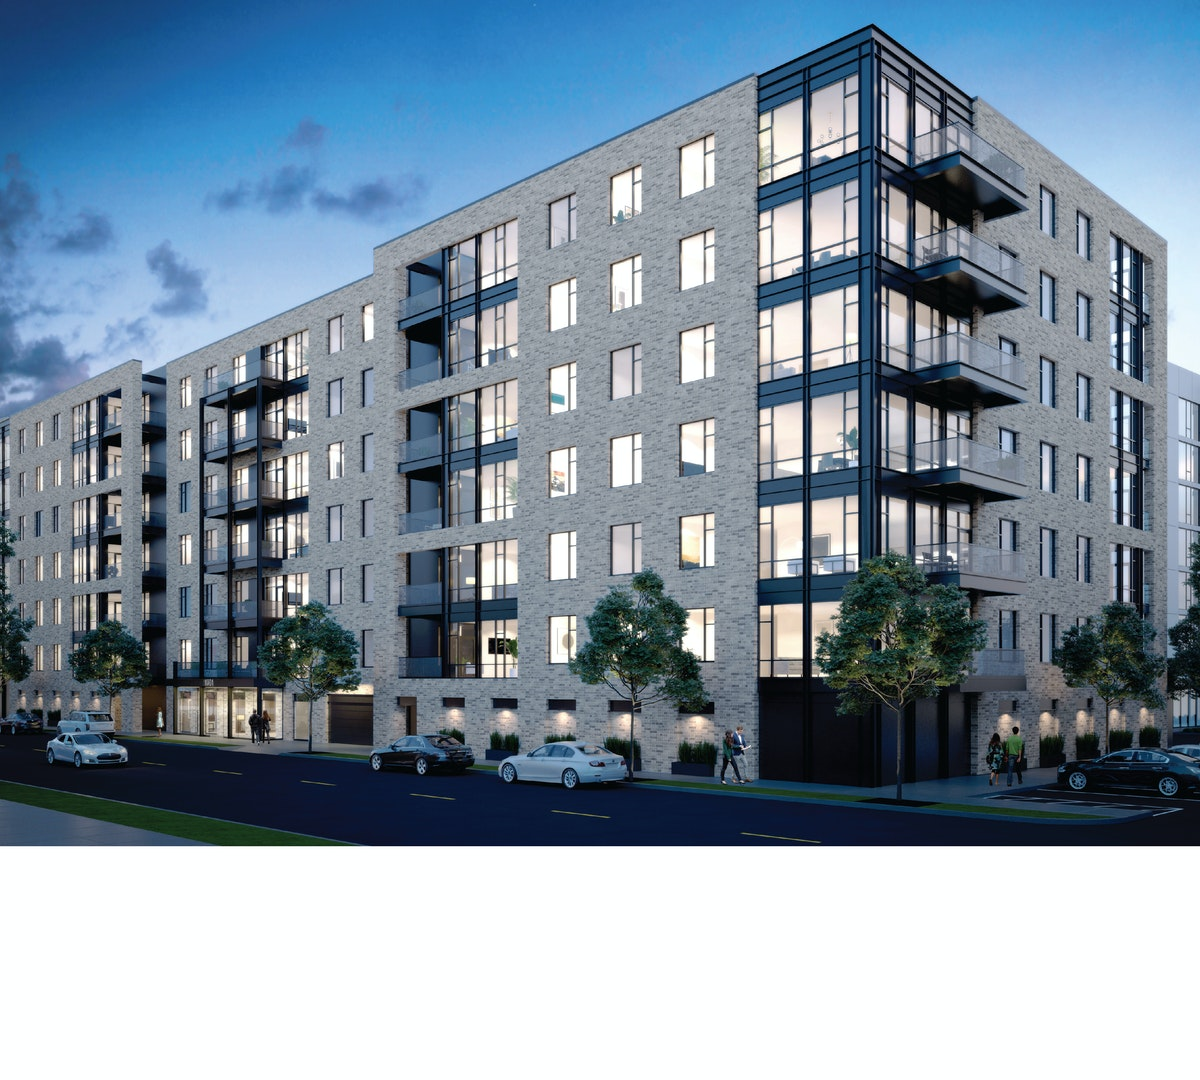 Ts Condos Bg Website 01 01 01 01 01 01 01 01 01